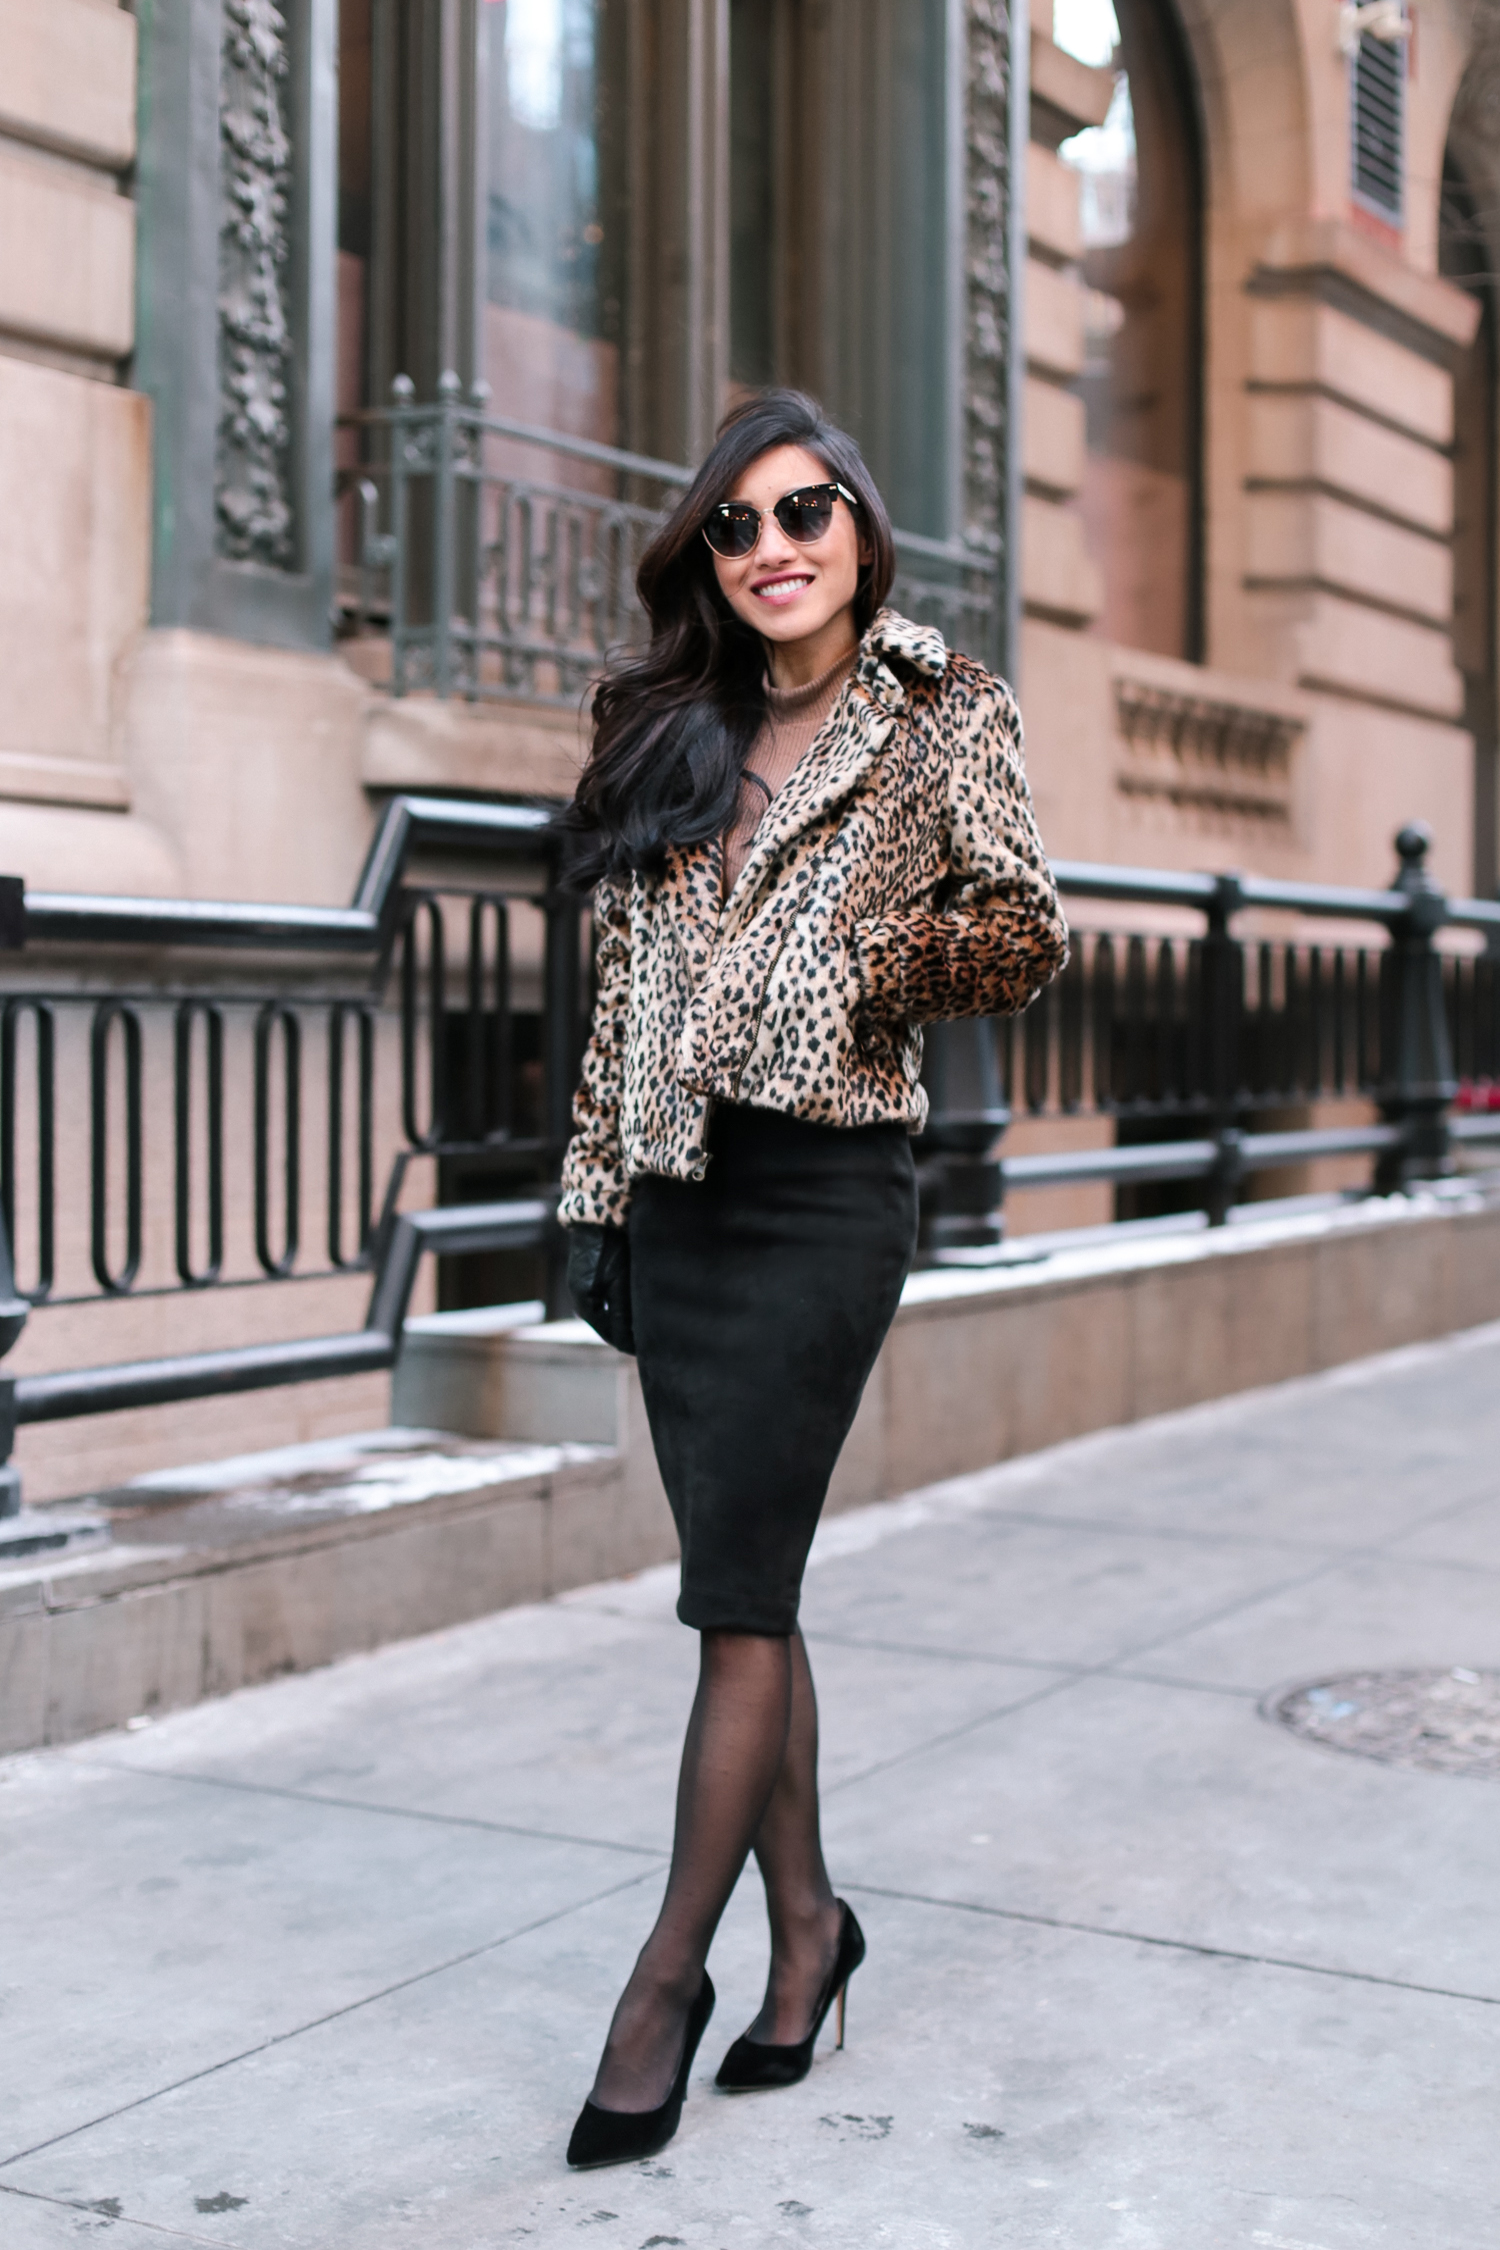 Leopard faux fur jacket quilted leather gloves